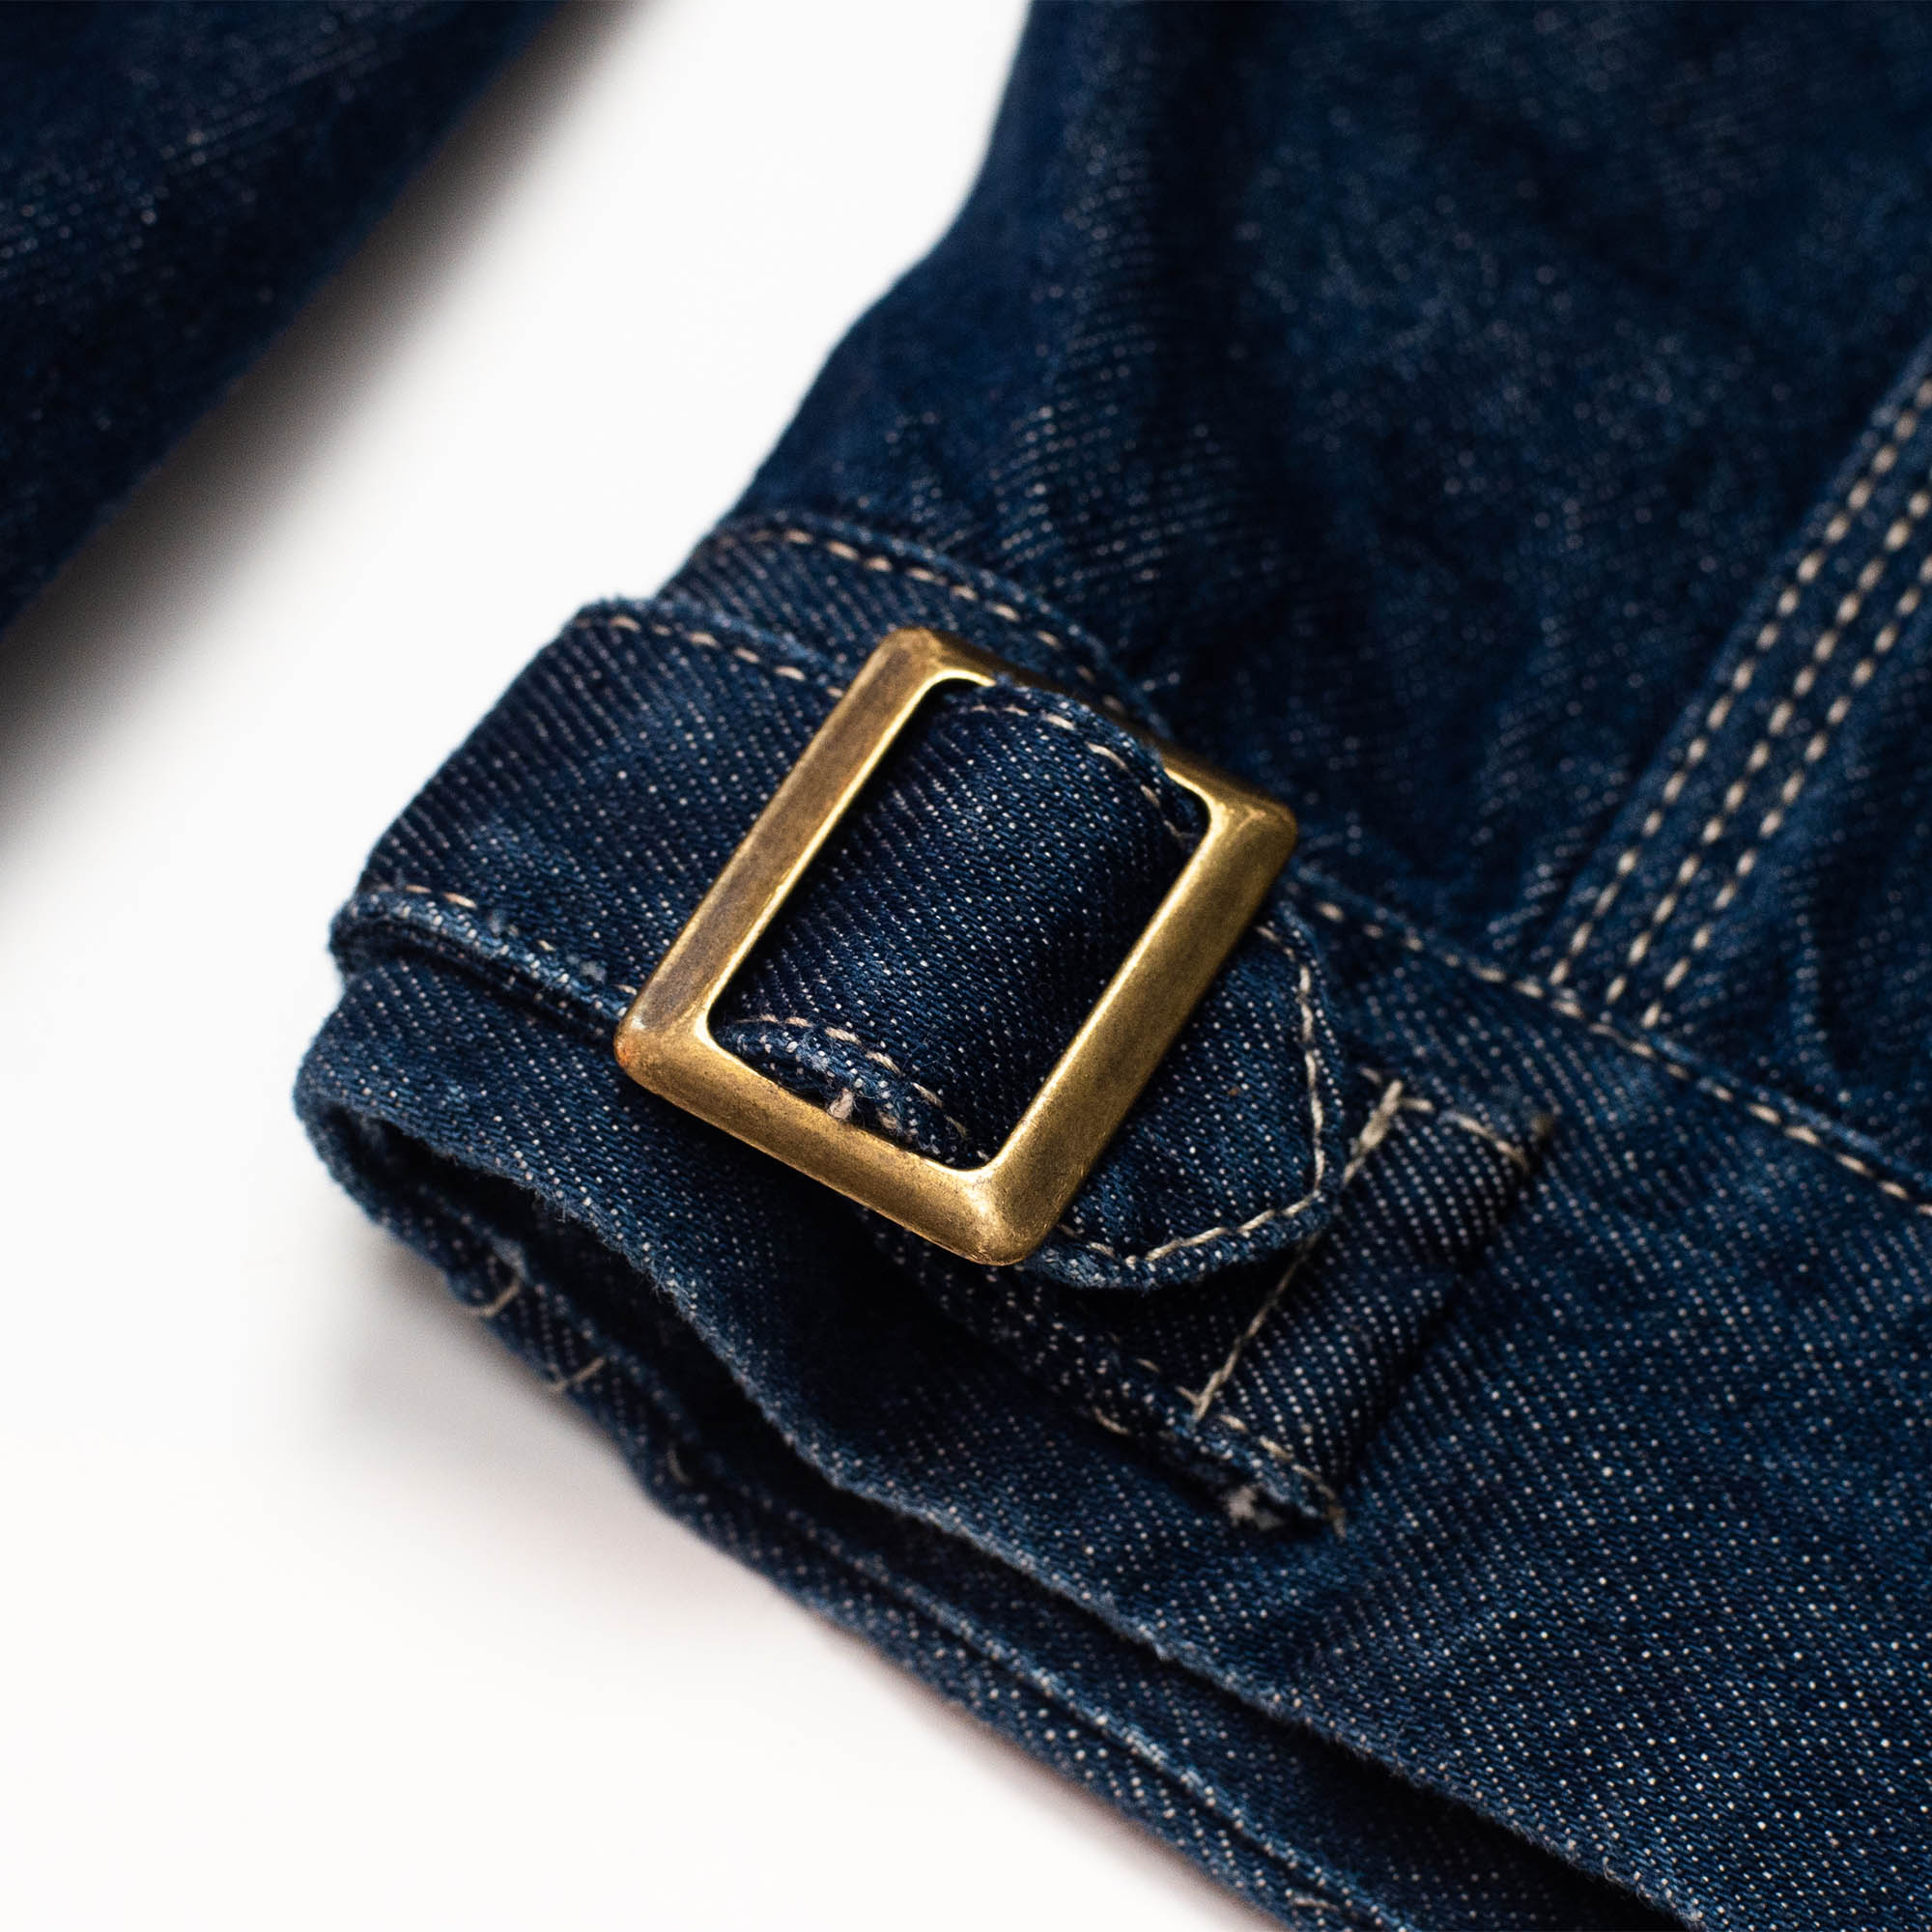 shangri-la-heritage-varenne-ranch-selvedge-candiani-denim-jacket-still-life-adjustable-tab